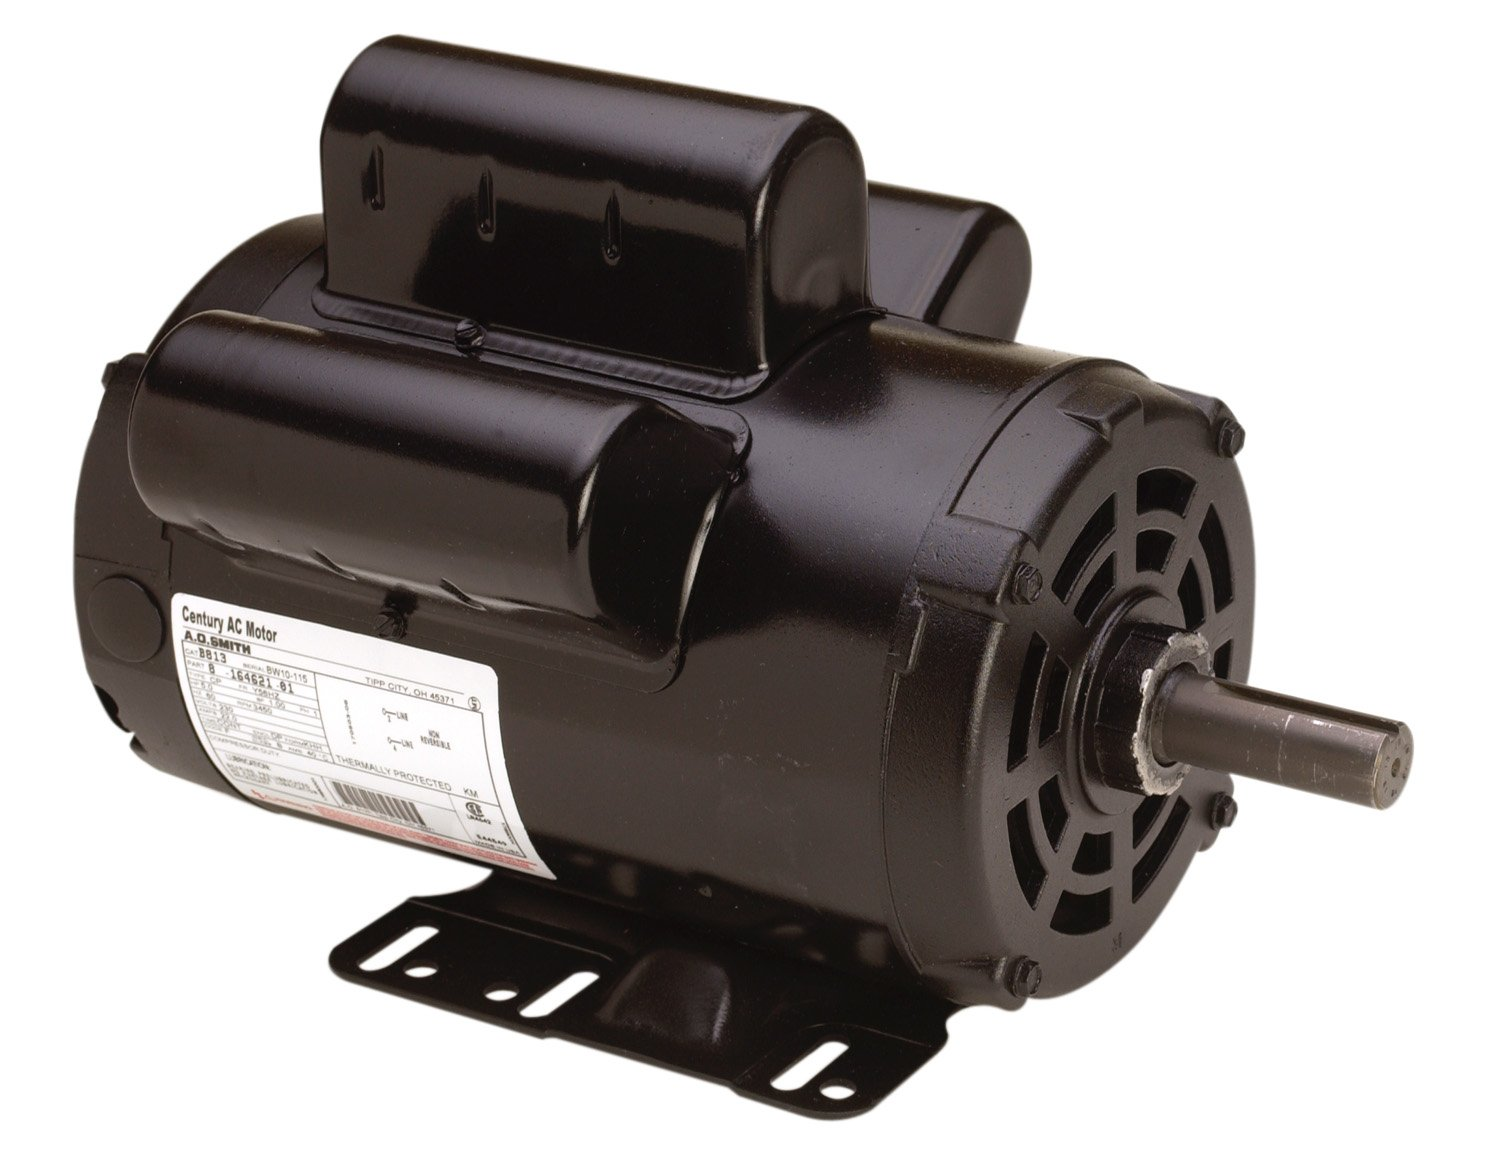 A.O. Smith AC motors B813 5 HP, 3450 RPM, 230 Volts, 22 Amps, 56HZ Frame, 1 Service Factor, CWLE Rotation, 7/8-Inch by 2.31-Inch Flat Shaft Compressor Motor by A. O. Smith